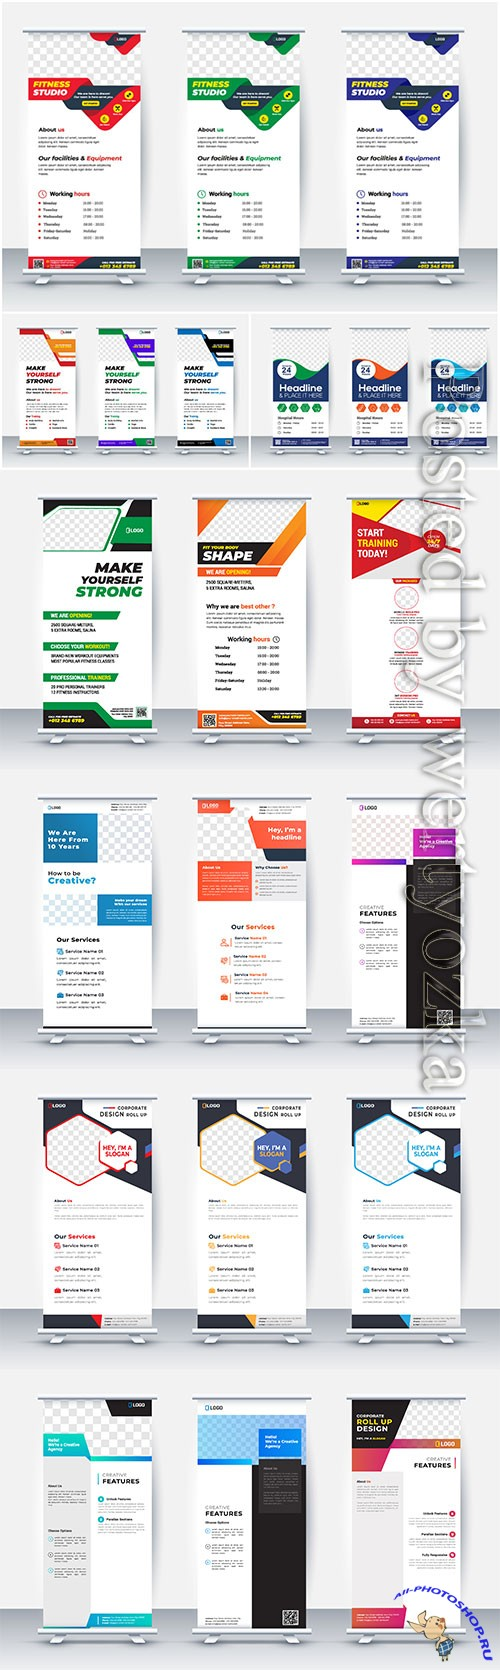 Business roll up banner stand poster, brochure flat design template creative concept